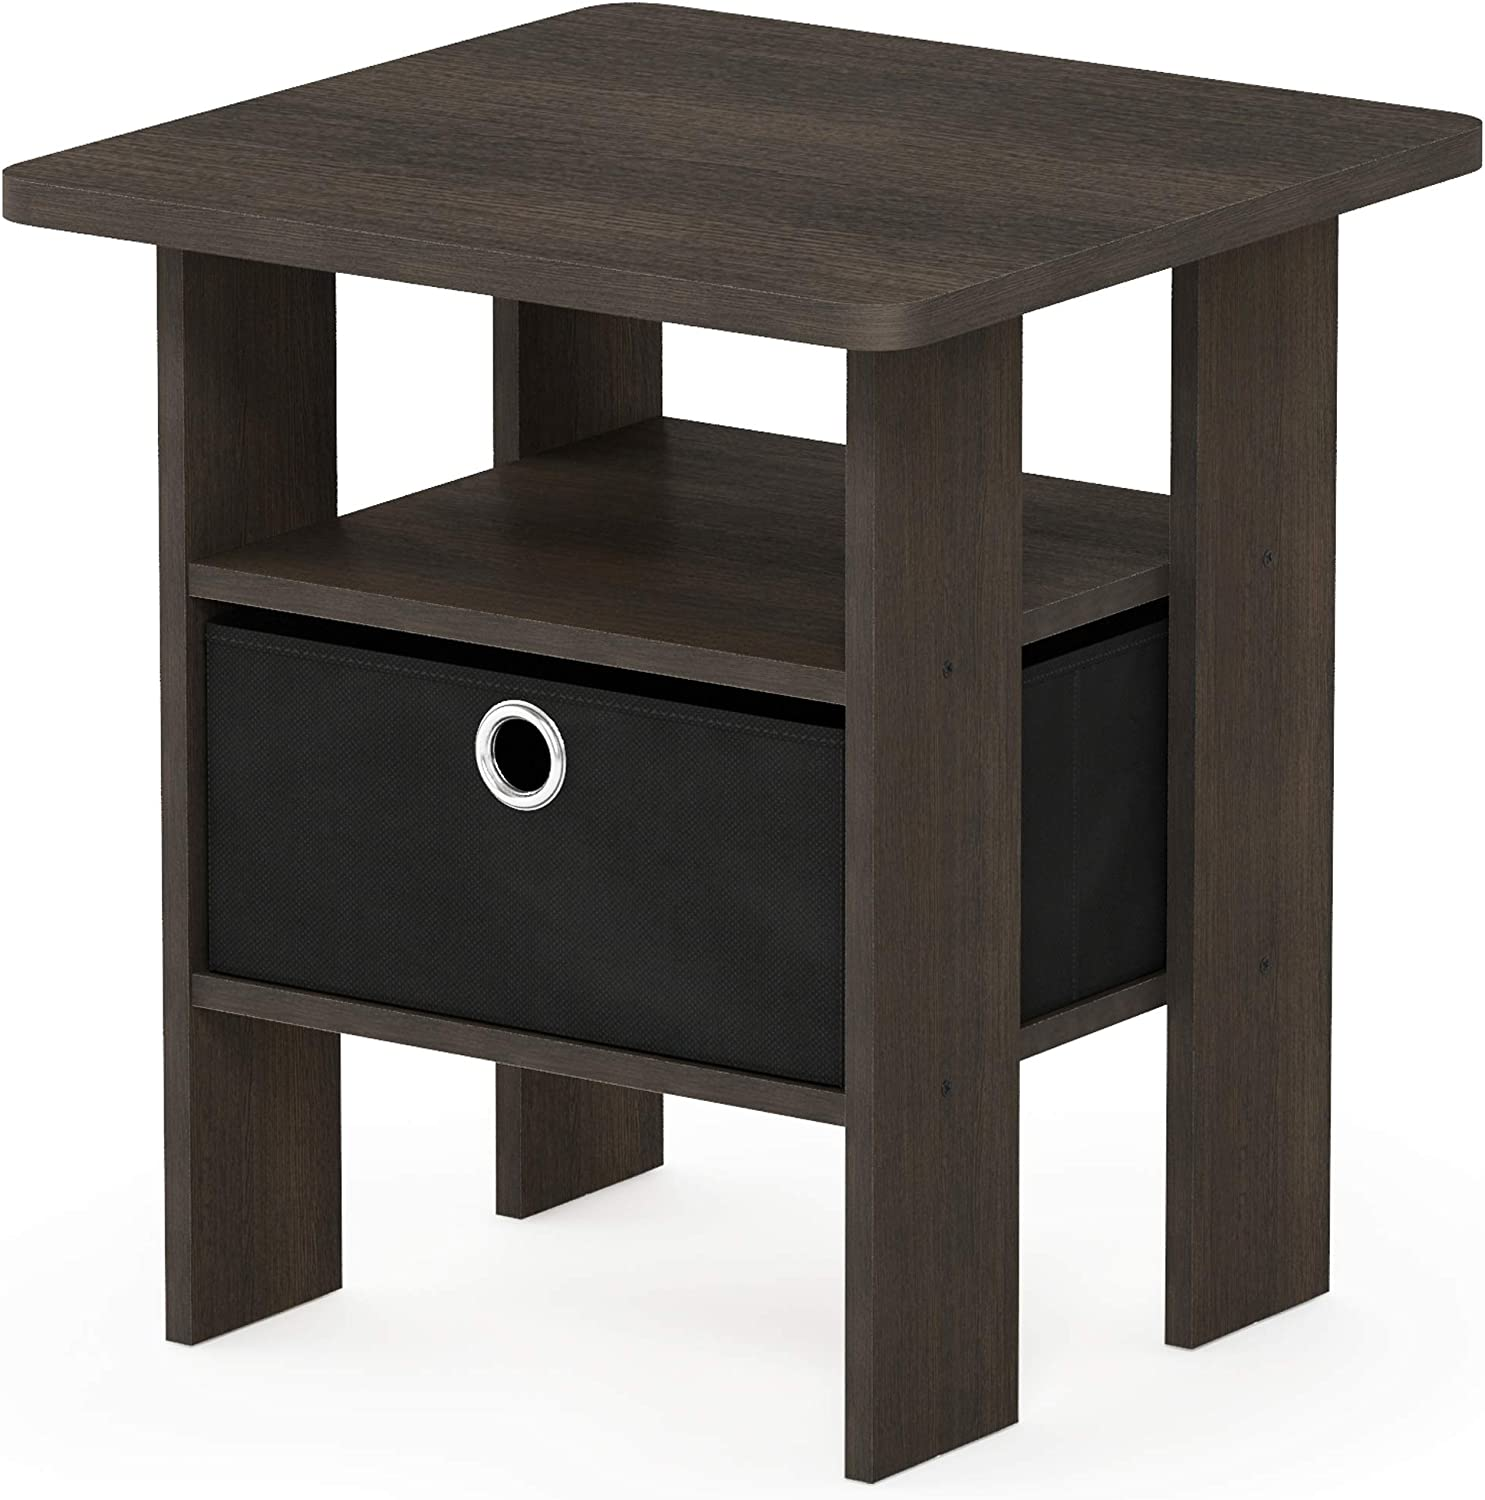 Furinno 11157 End Table Bedroom Night Stand With Bin Drawer Amazon Ca Home Kitchen